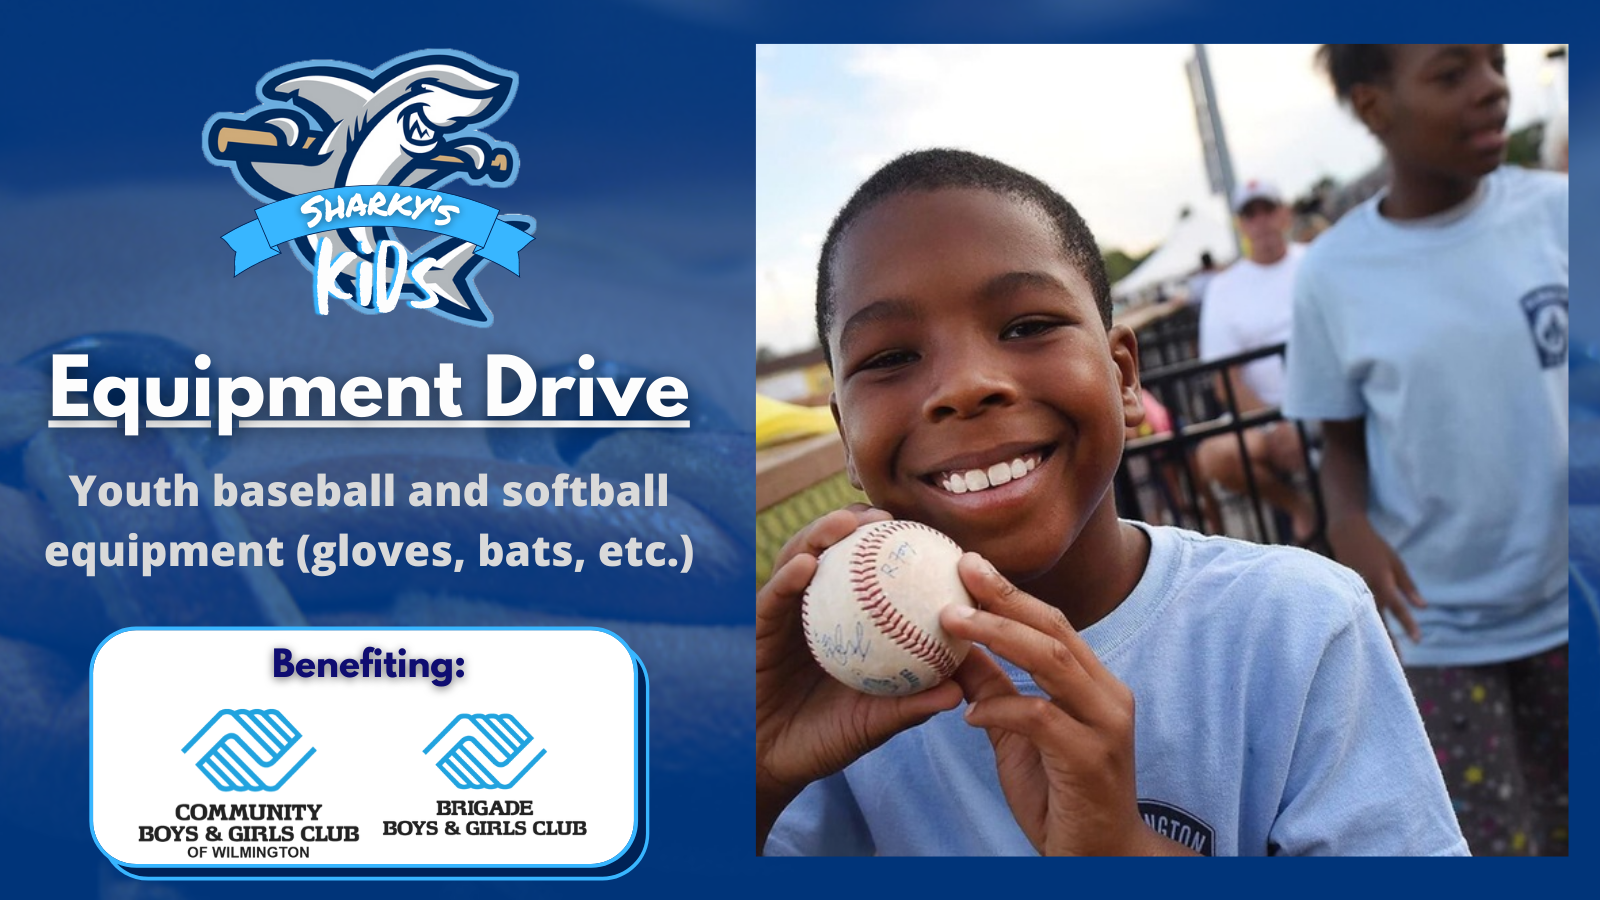 Sharks accepting youth baseball equipment donations for Boys and Girls Clubs